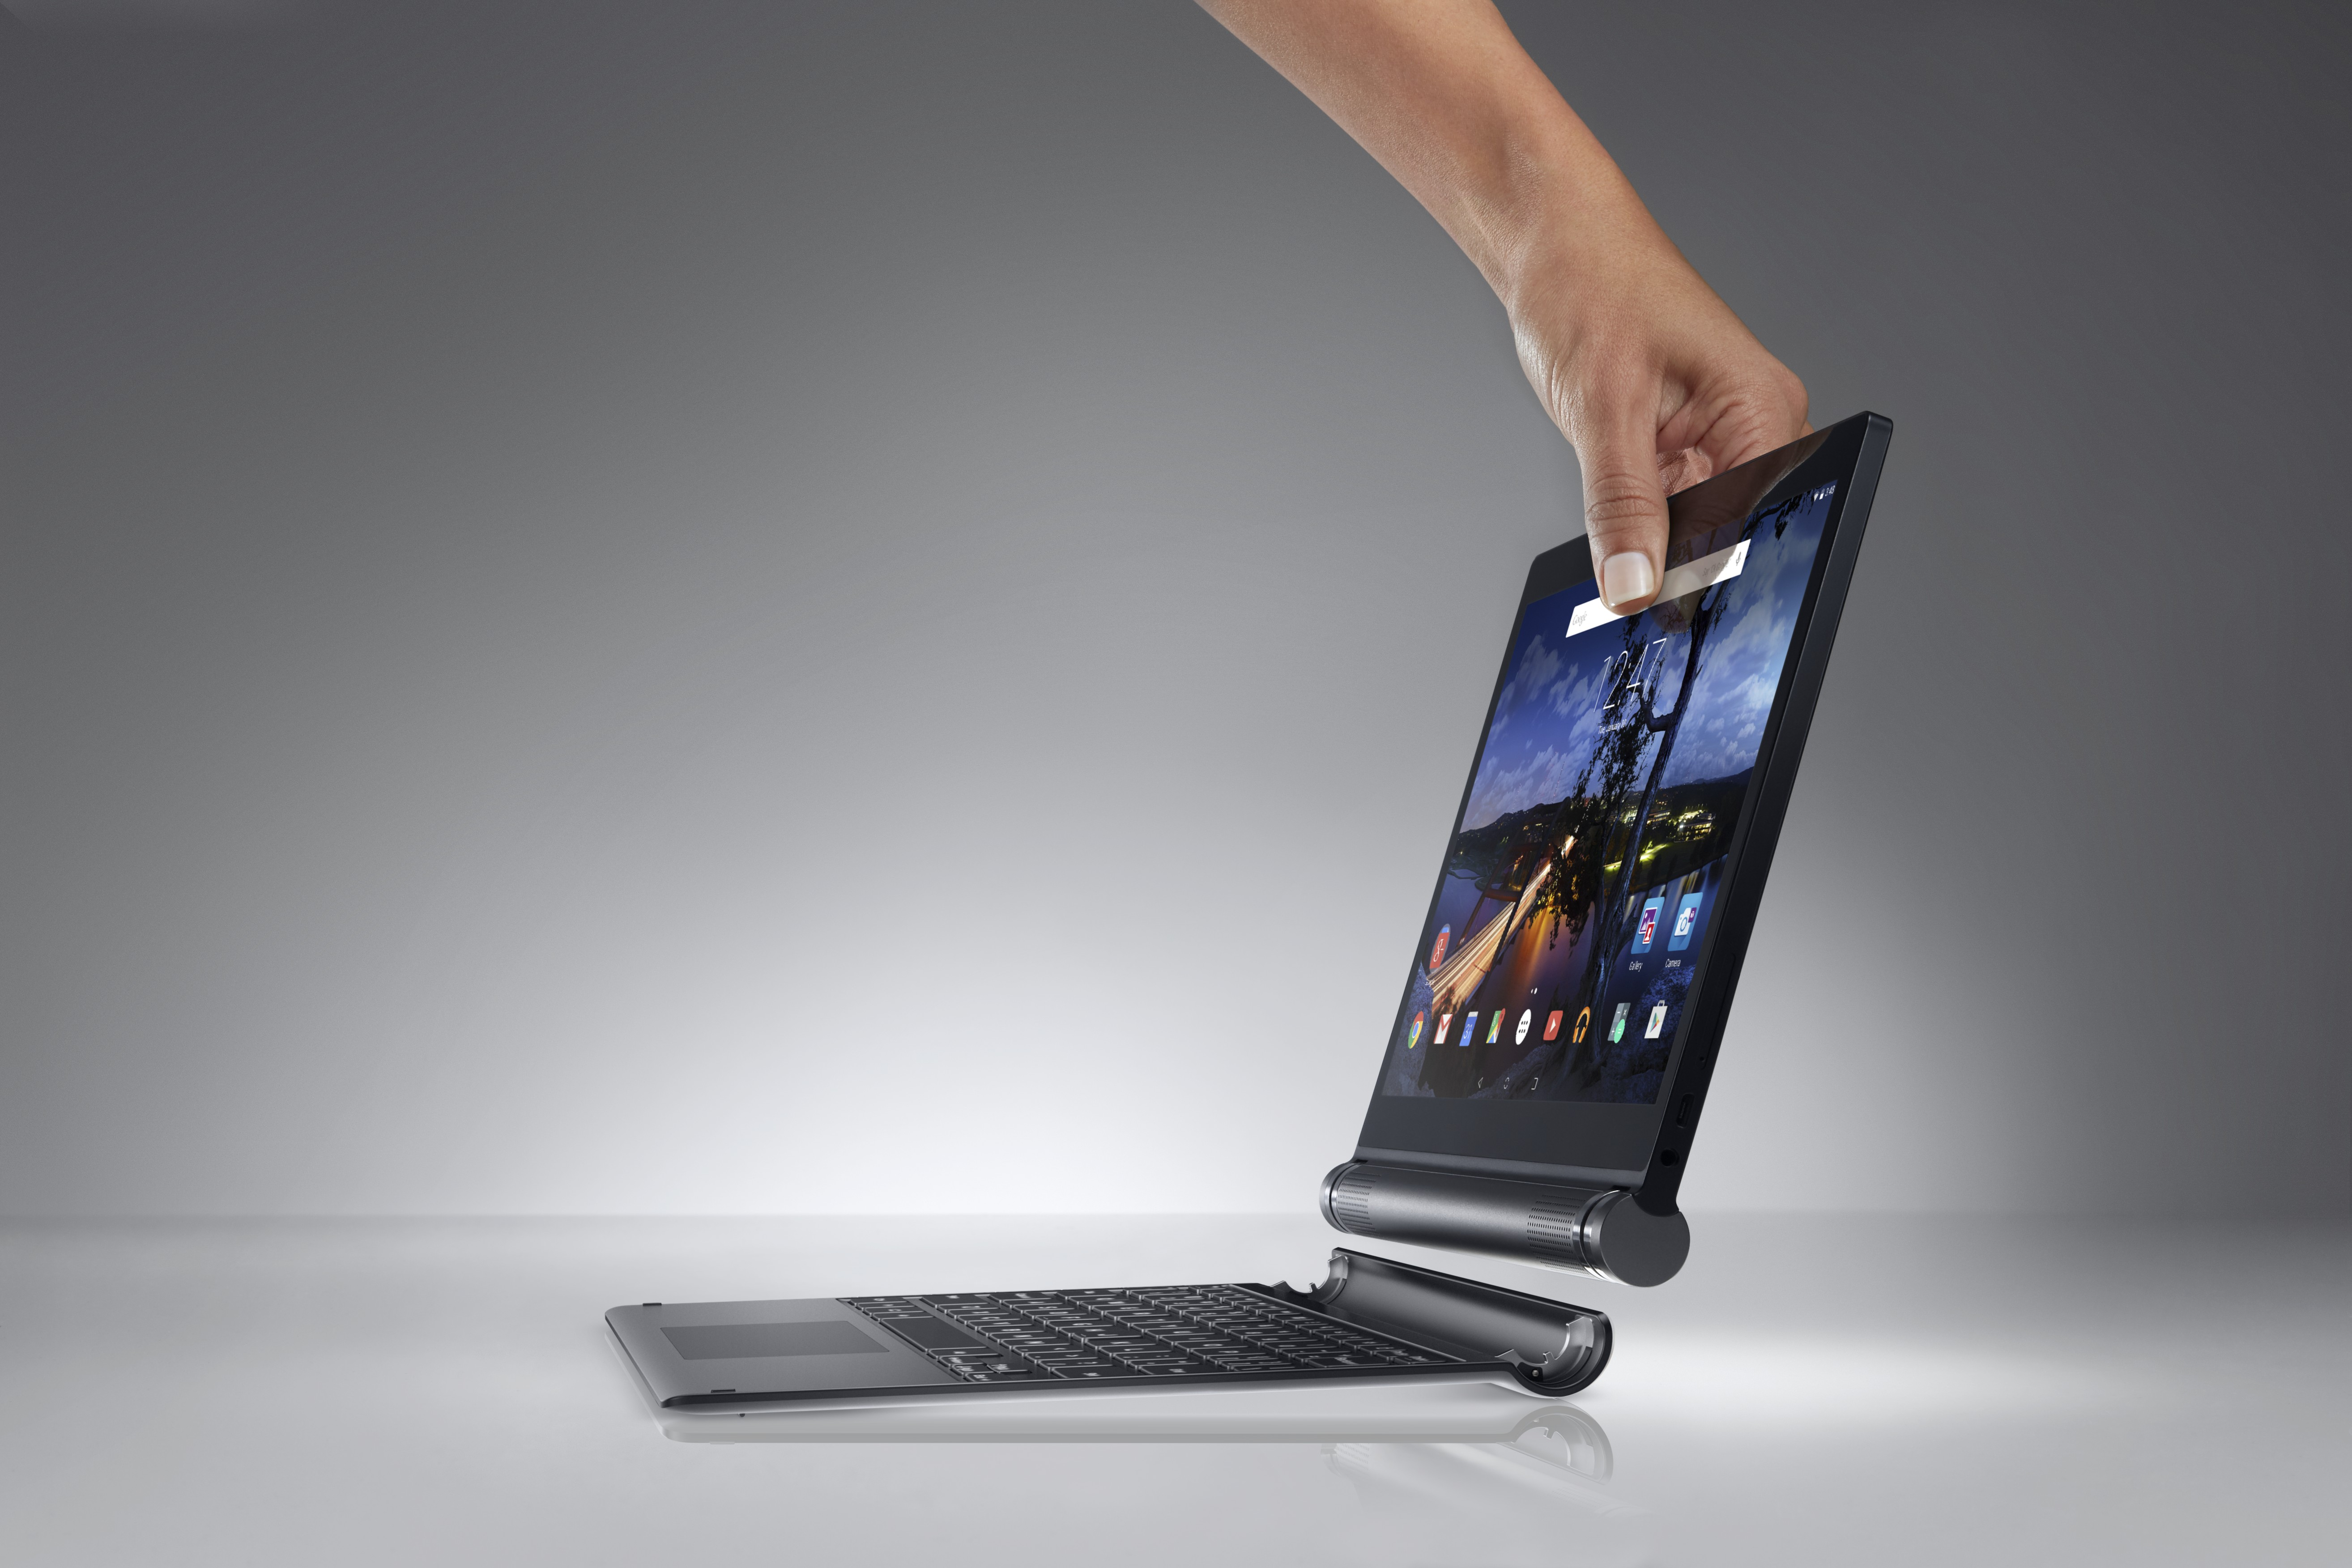 Venue 10 7000 Series Tablet with Keyboard - Beauty